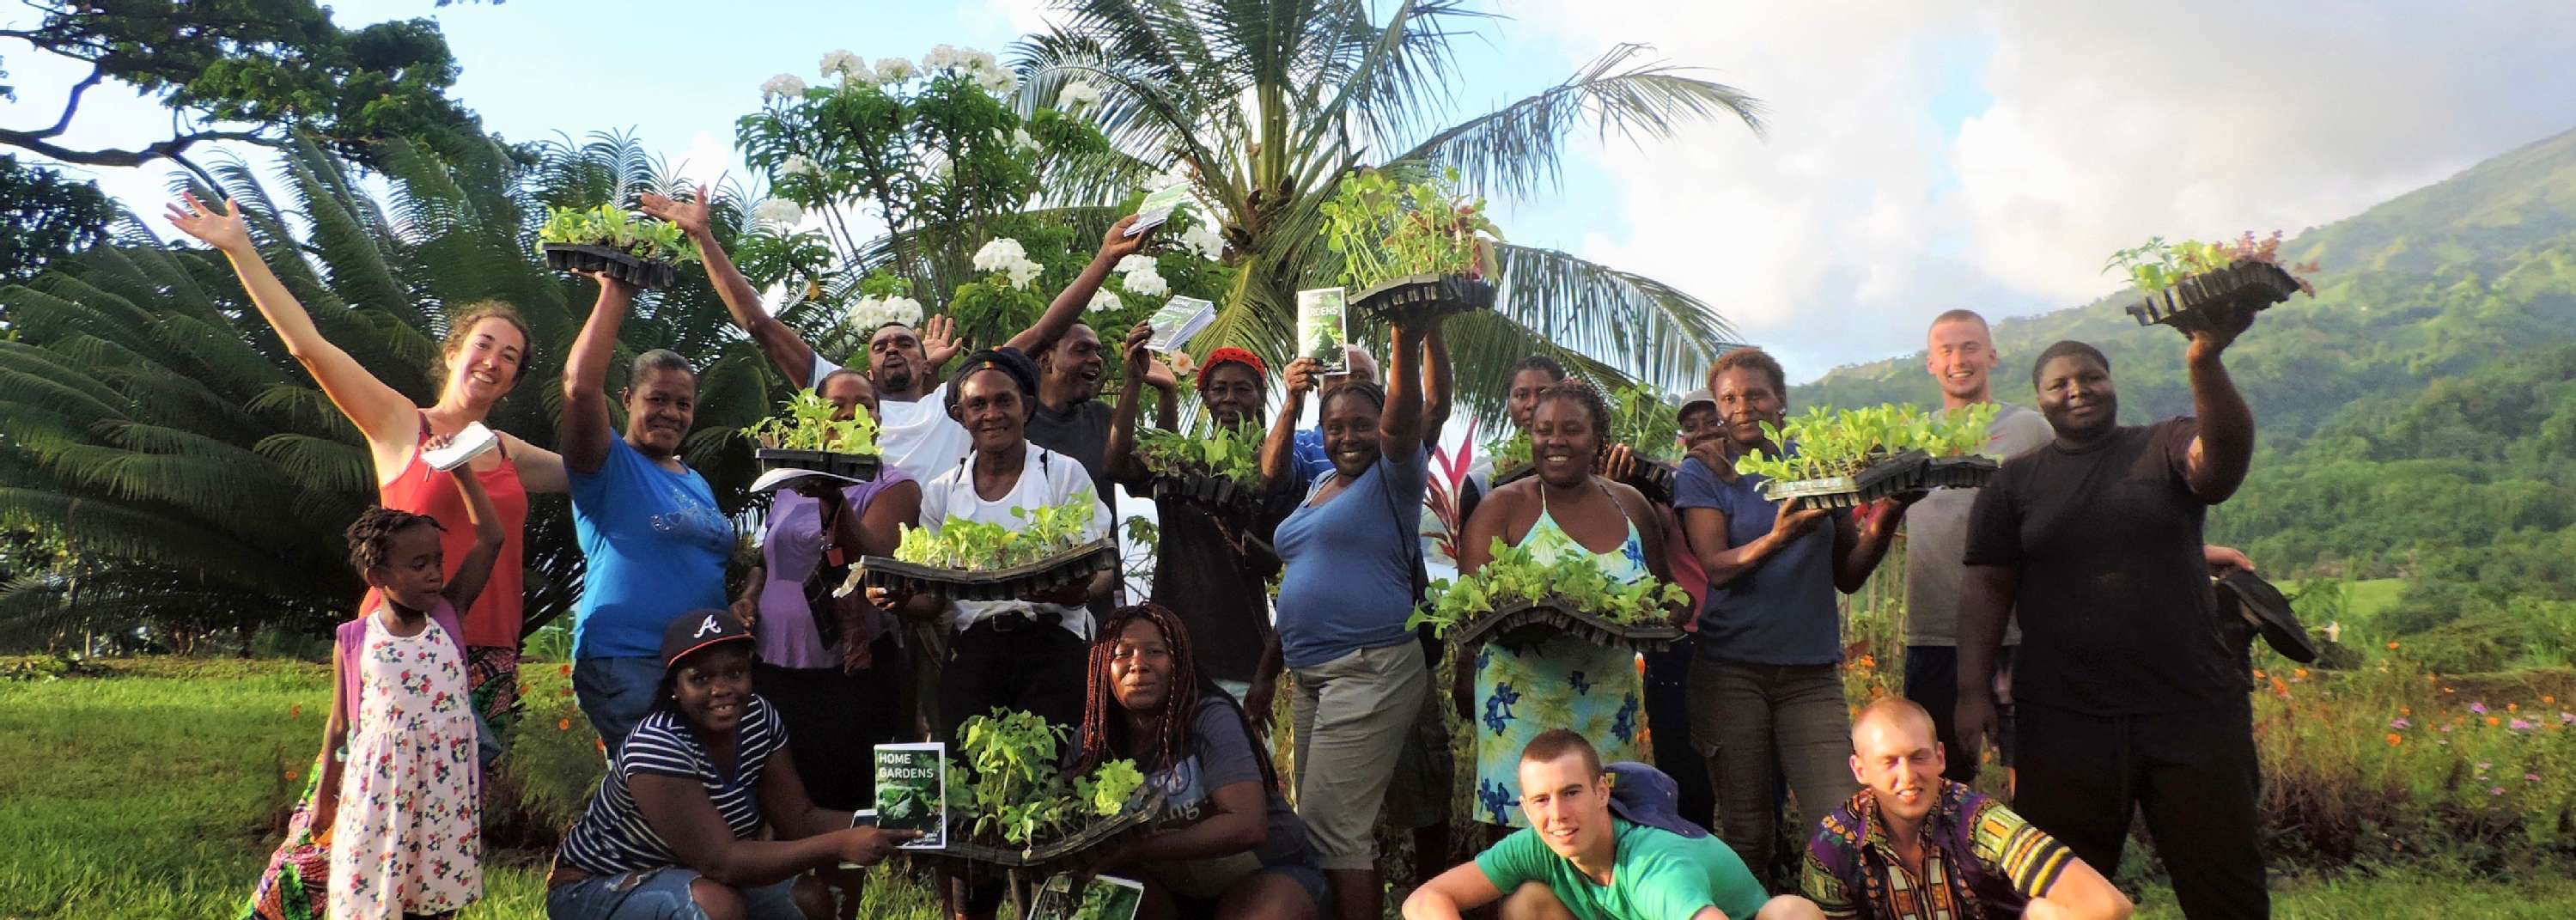 This Caribbean Island Is Training the Next Generation of Environment Leaders